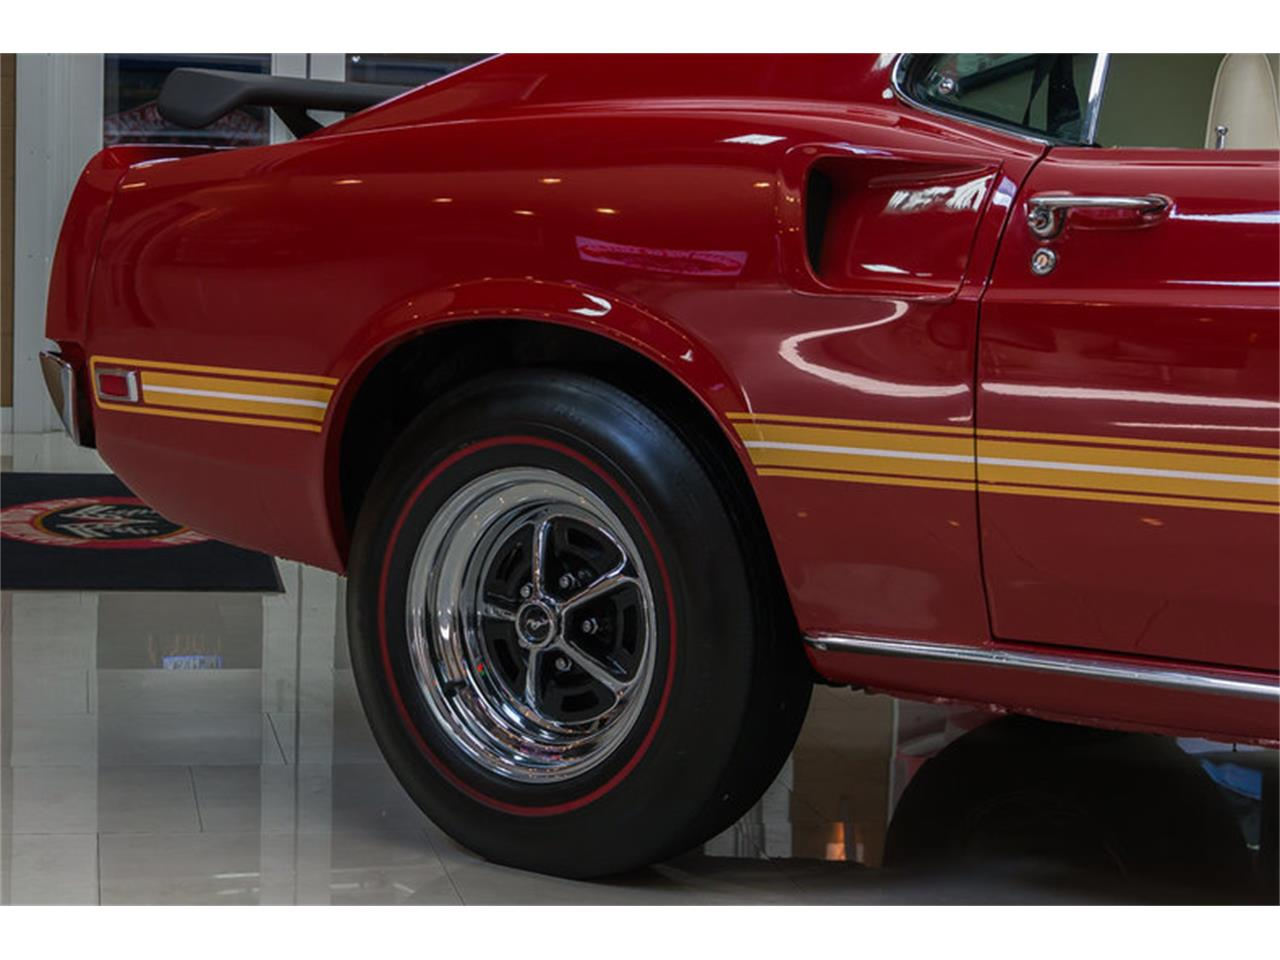 Large Picture of '69 Ford Mustang Mach 1 S Code Offered by Vanguard Motor Sales - IS3G